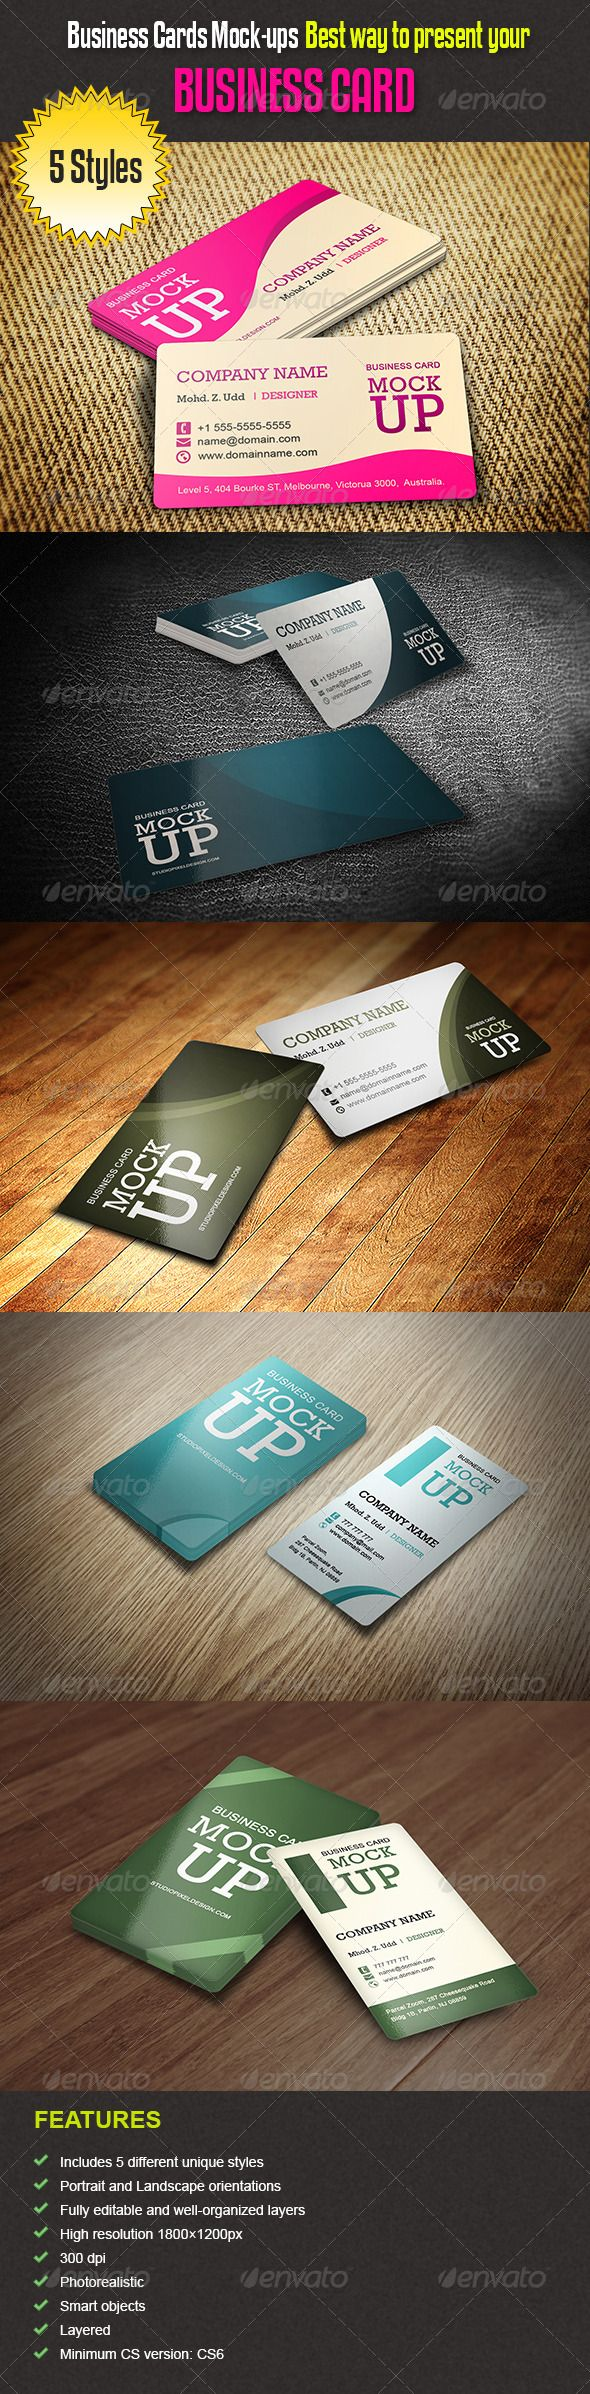 71 best Web - Business Cards images on Pinterest | Business cards ...